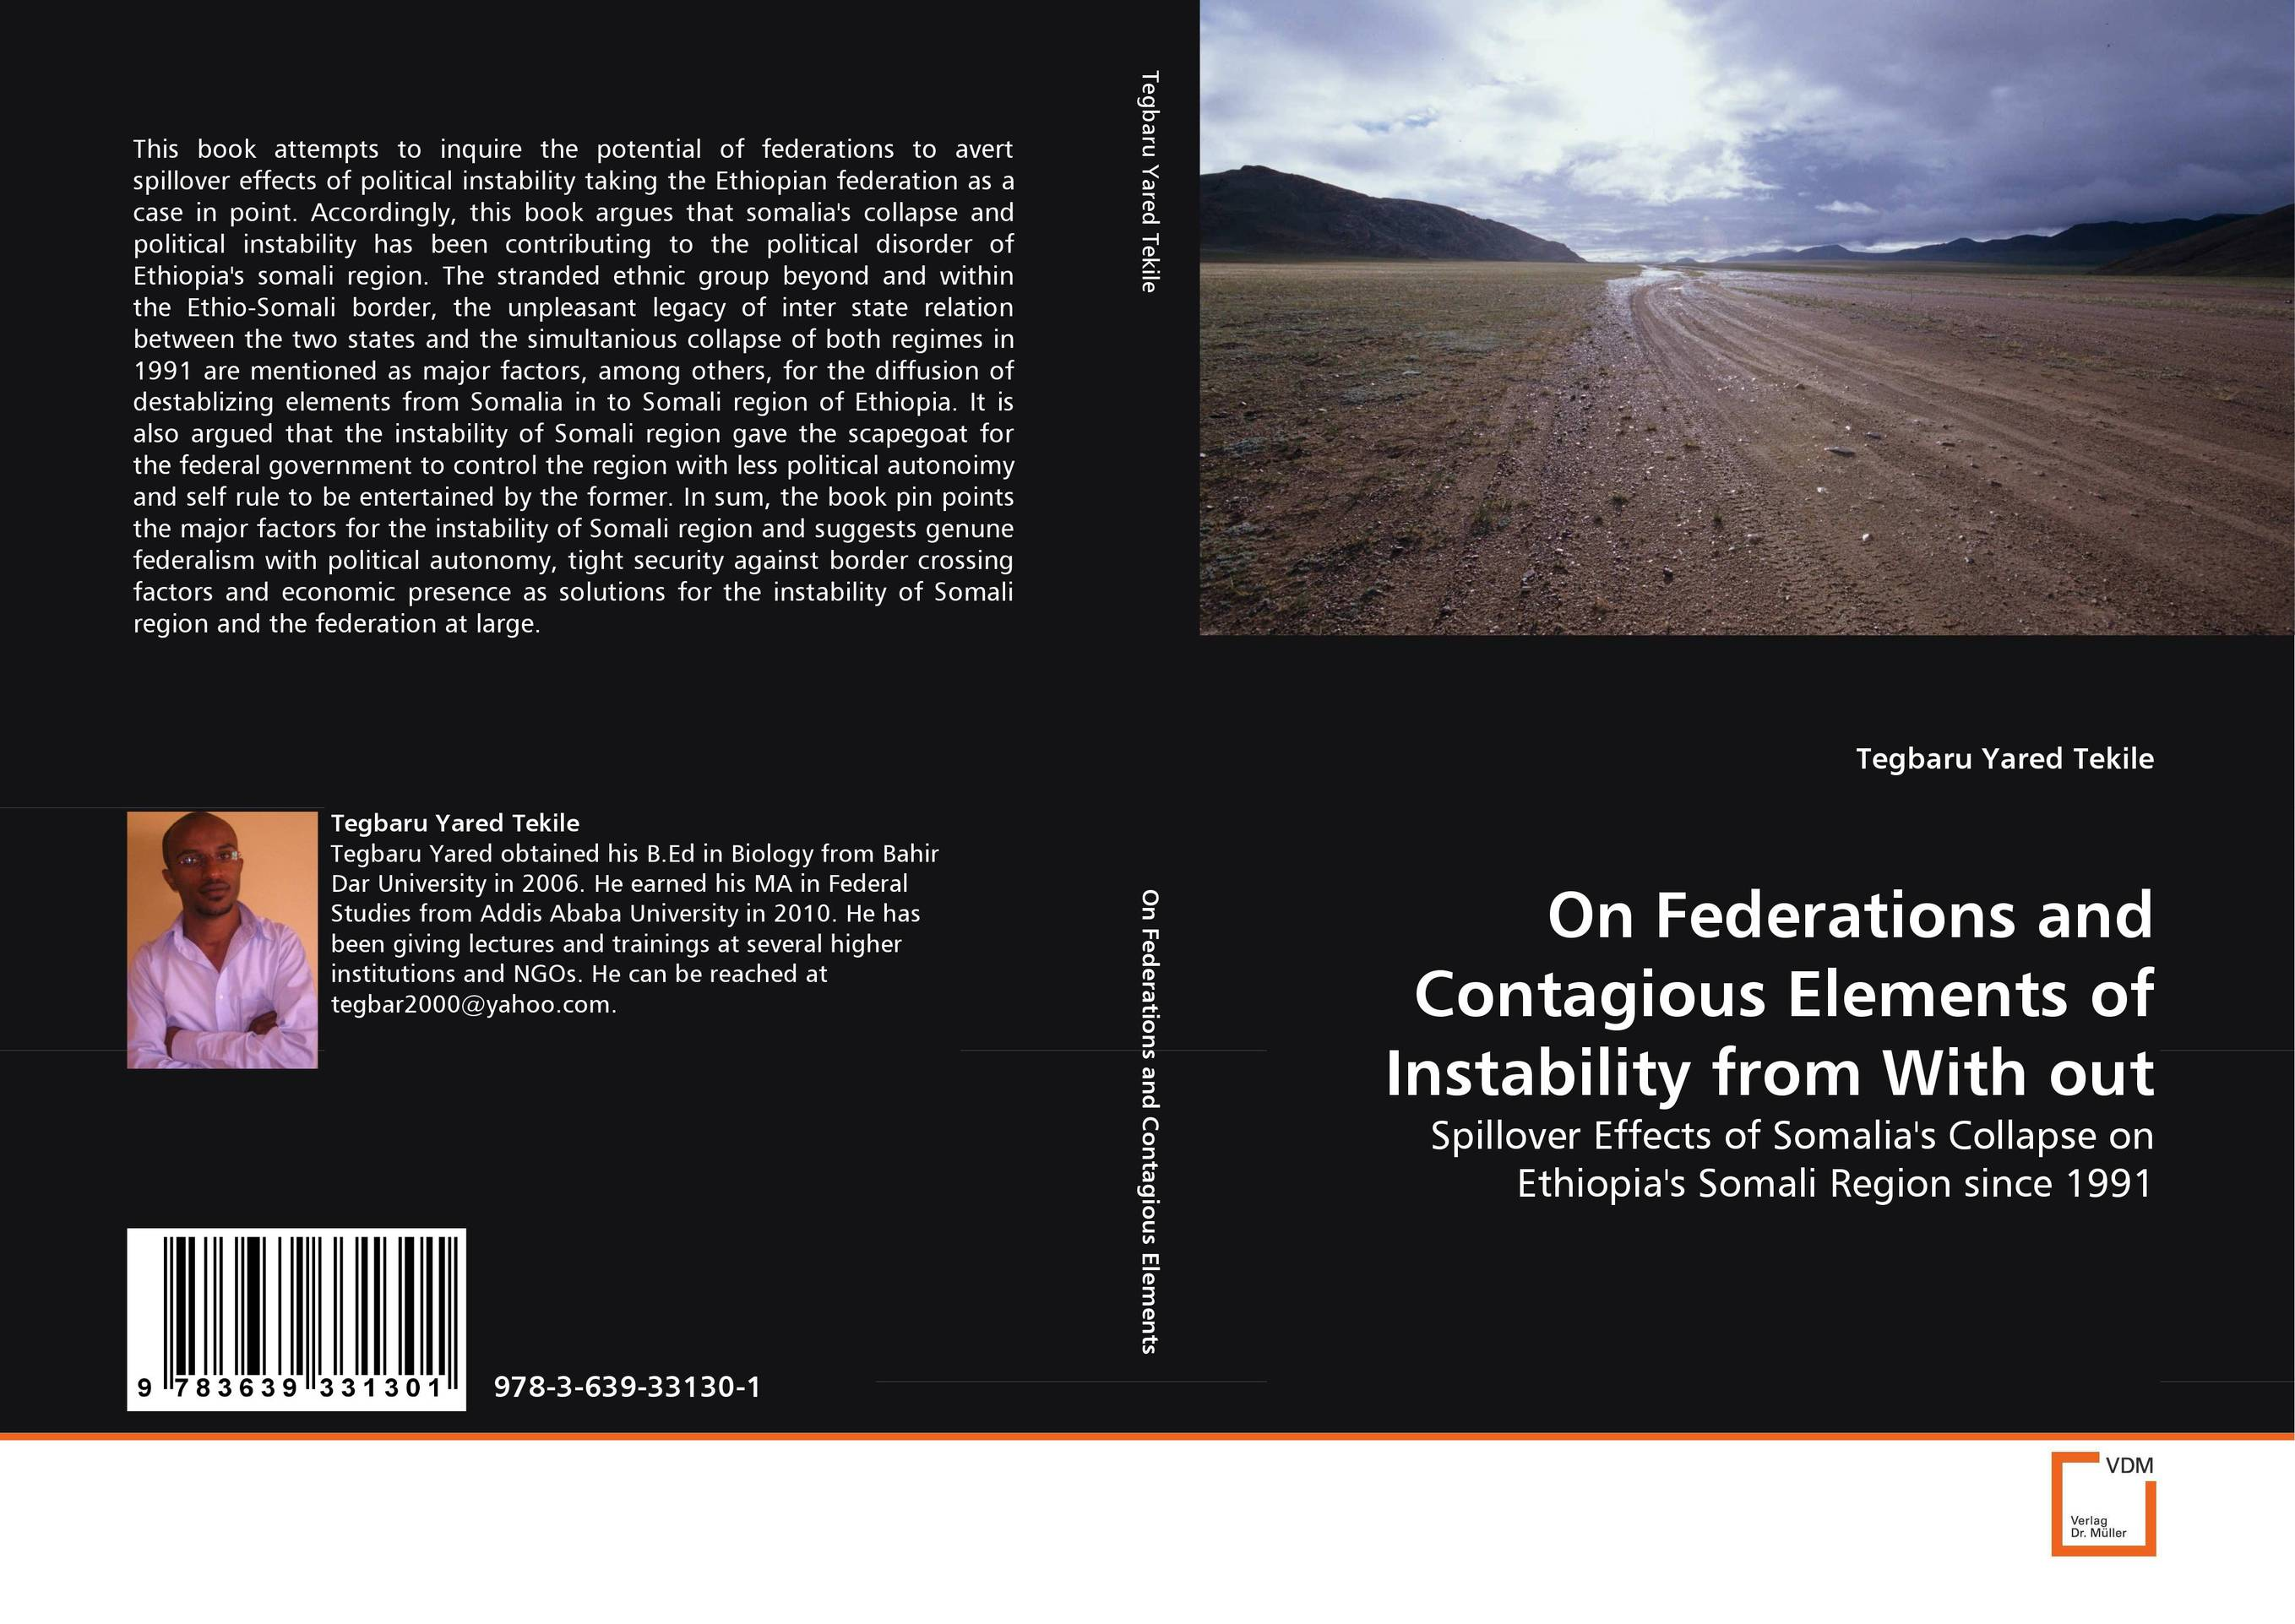 Фото On Federations and Contagious Elements of Instability from With out cervical cancer in amhara region in ethiopia